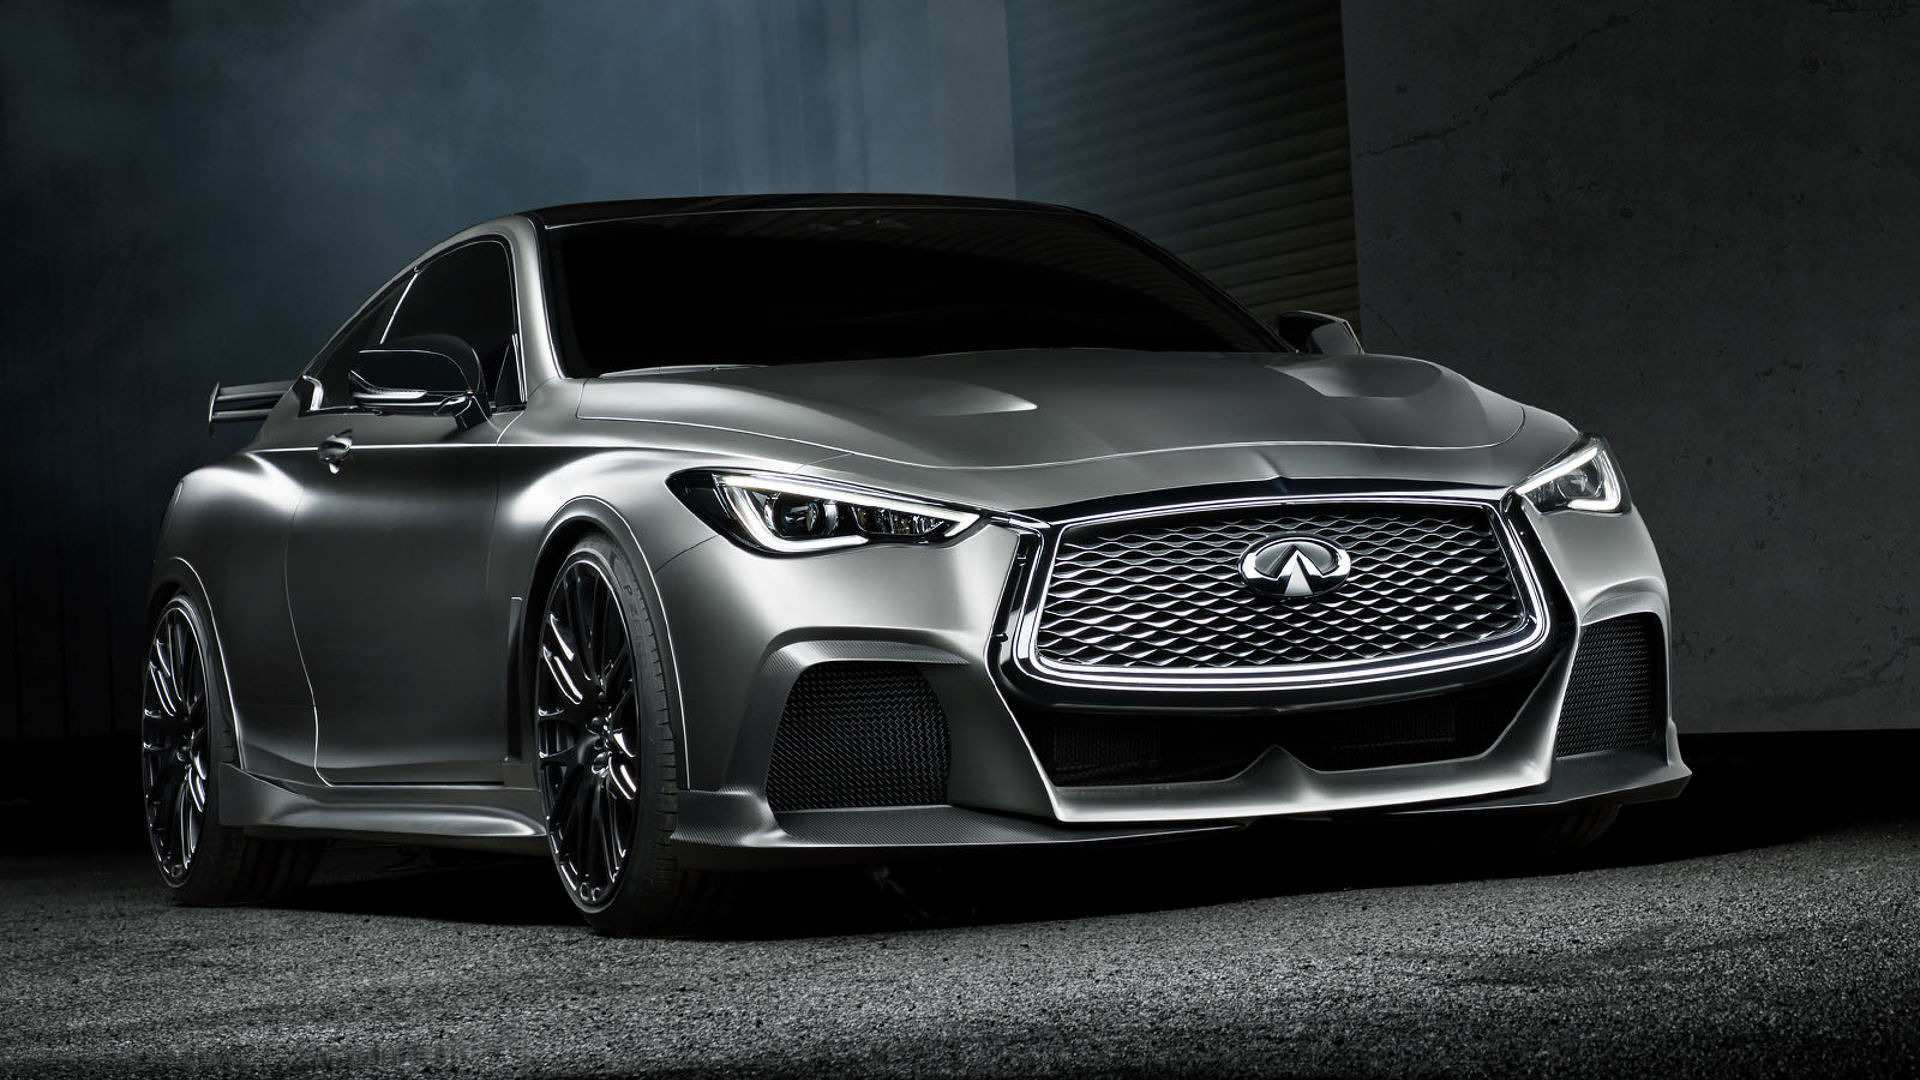 16 All New 2020 Infiniti Q60 Black S Price Speed Test